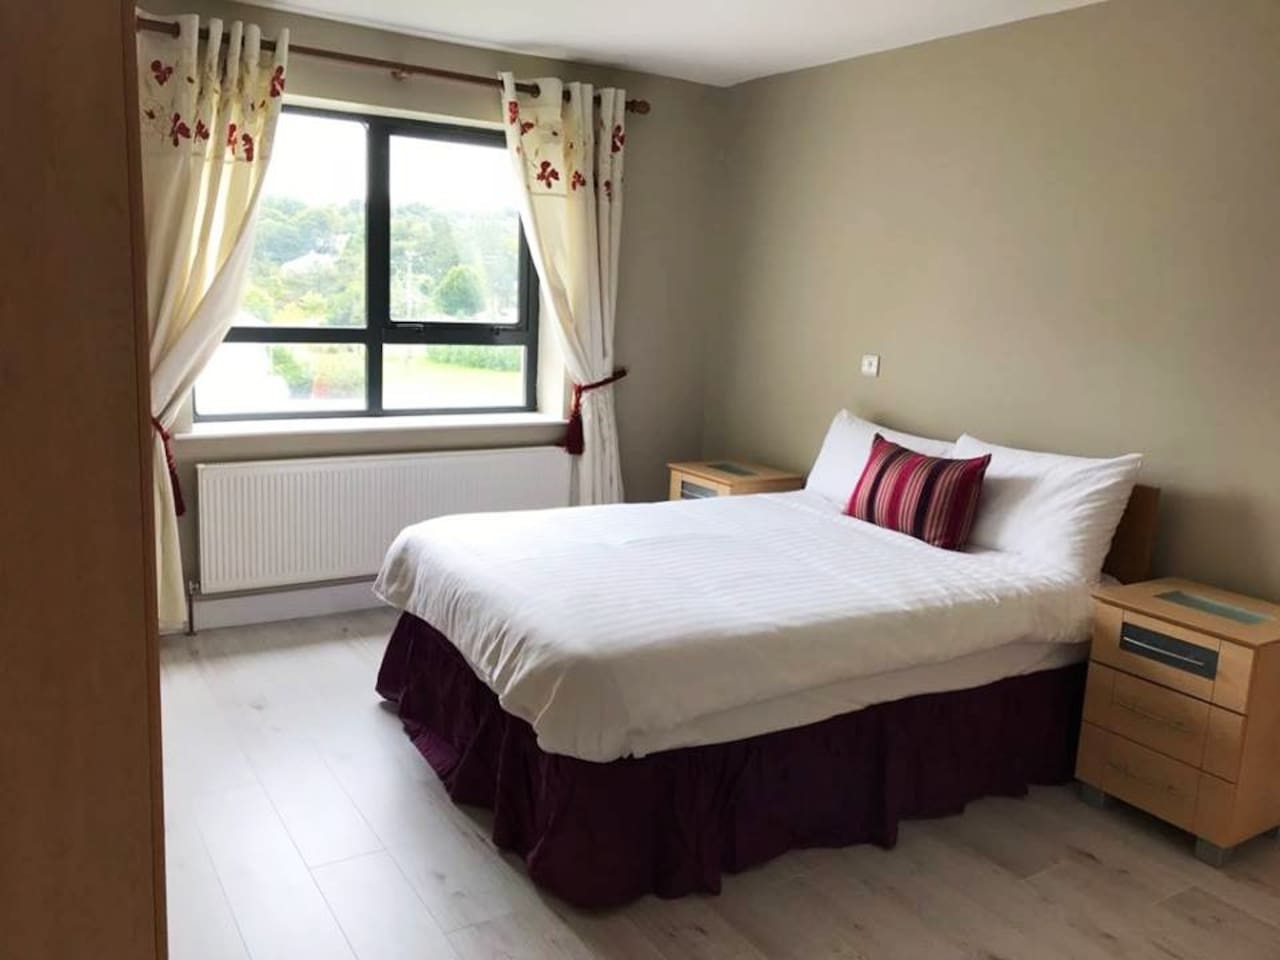 Our double bedroom with ensuite